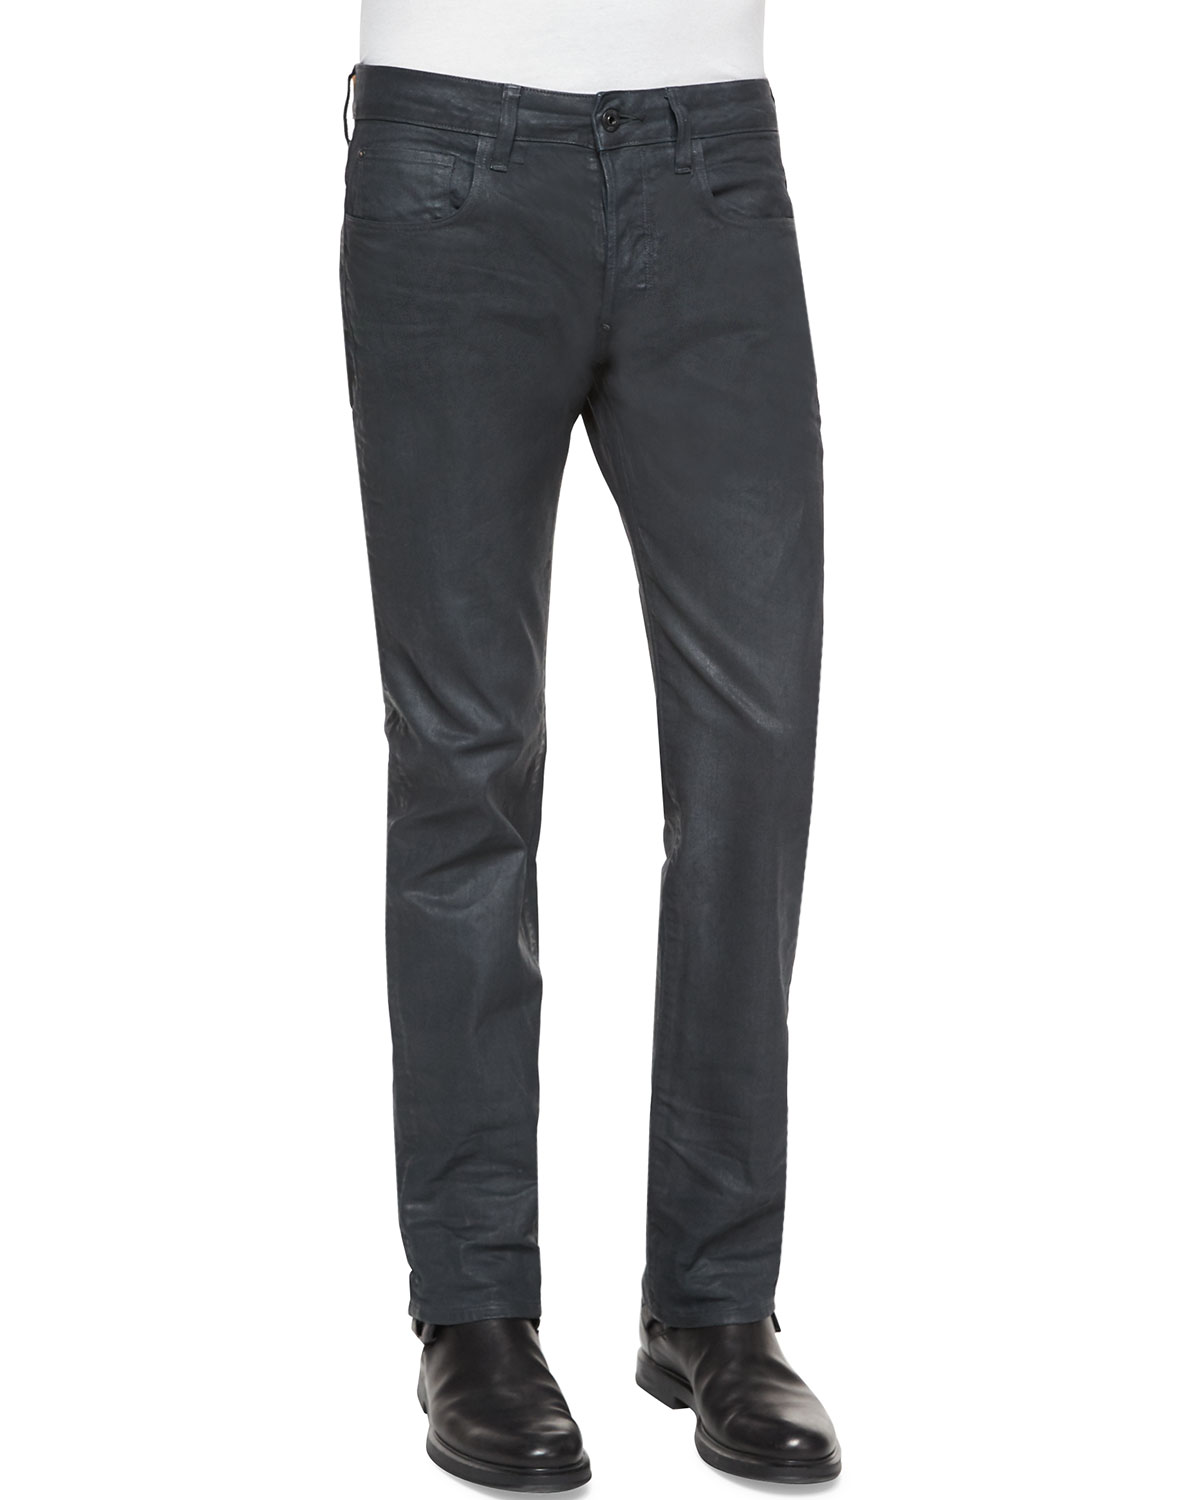 eceaa1d4a80 G-Star Defend Coated Straight-Leg Jeans, Dark Blue | Neiman Marcus